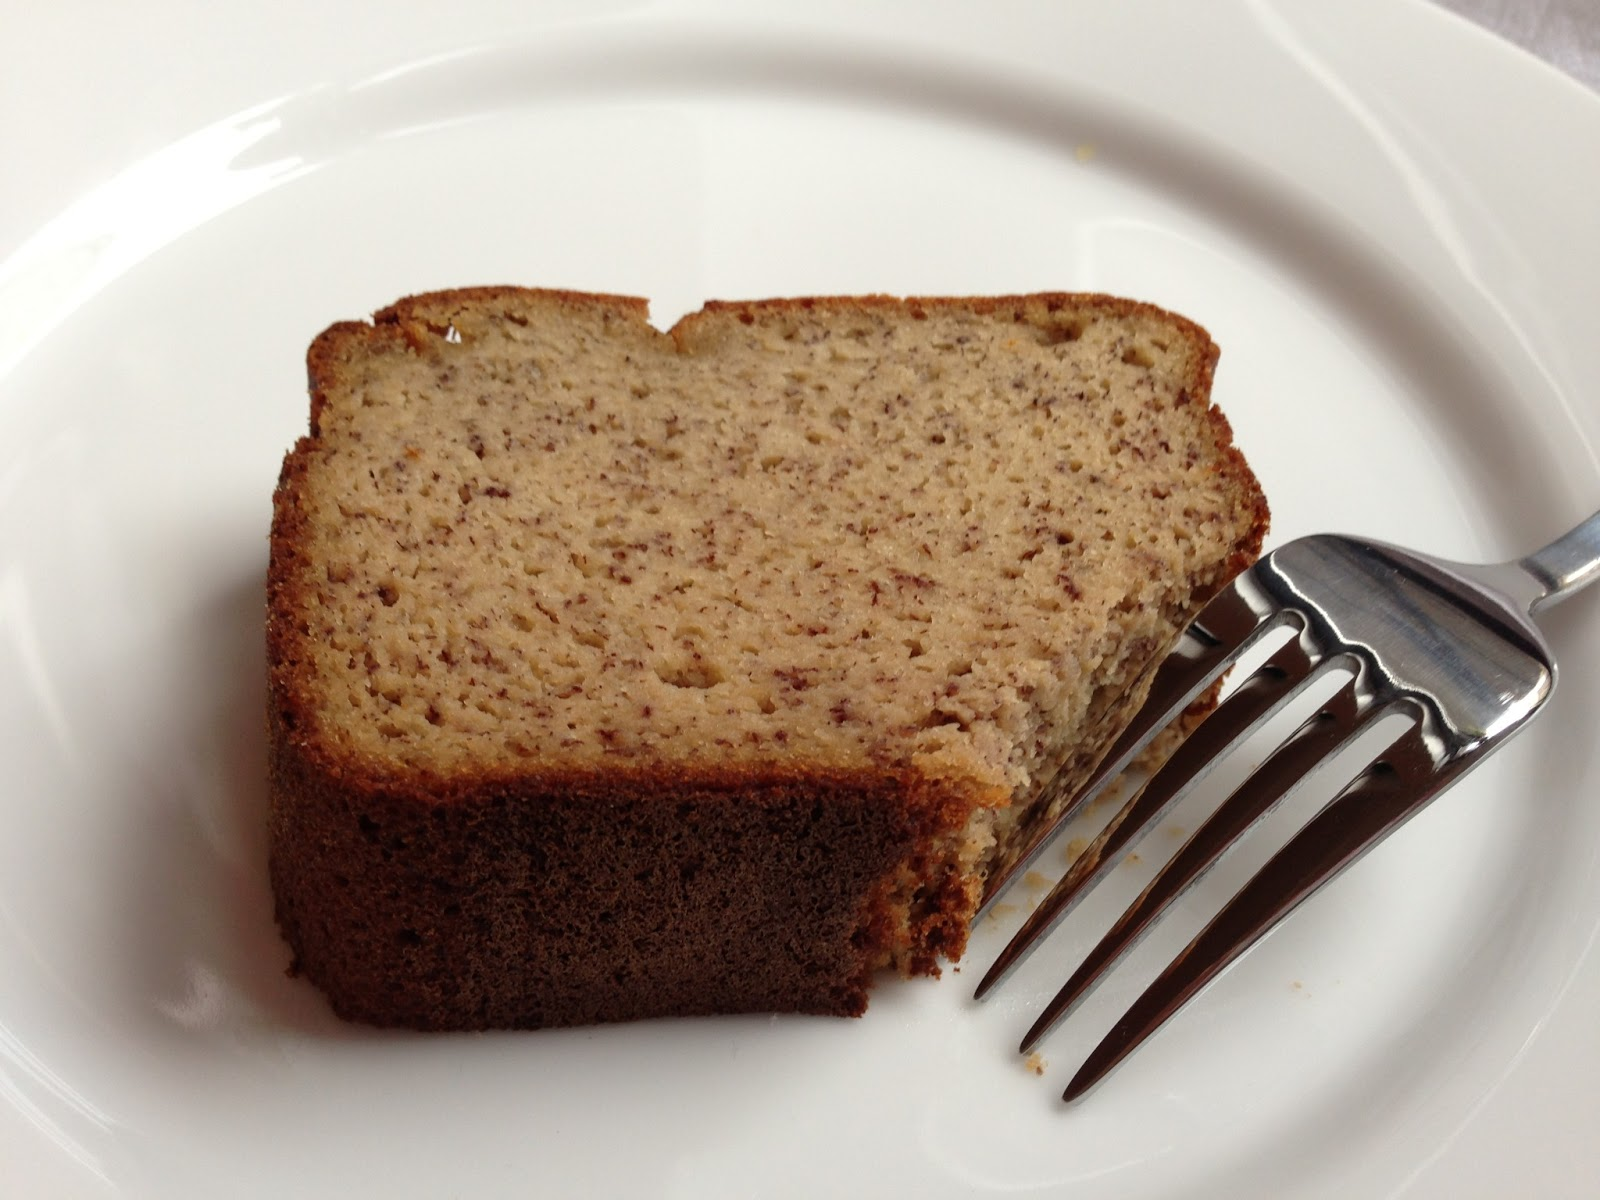 Grain free banana bread kosher for passover forumfinder Image collections